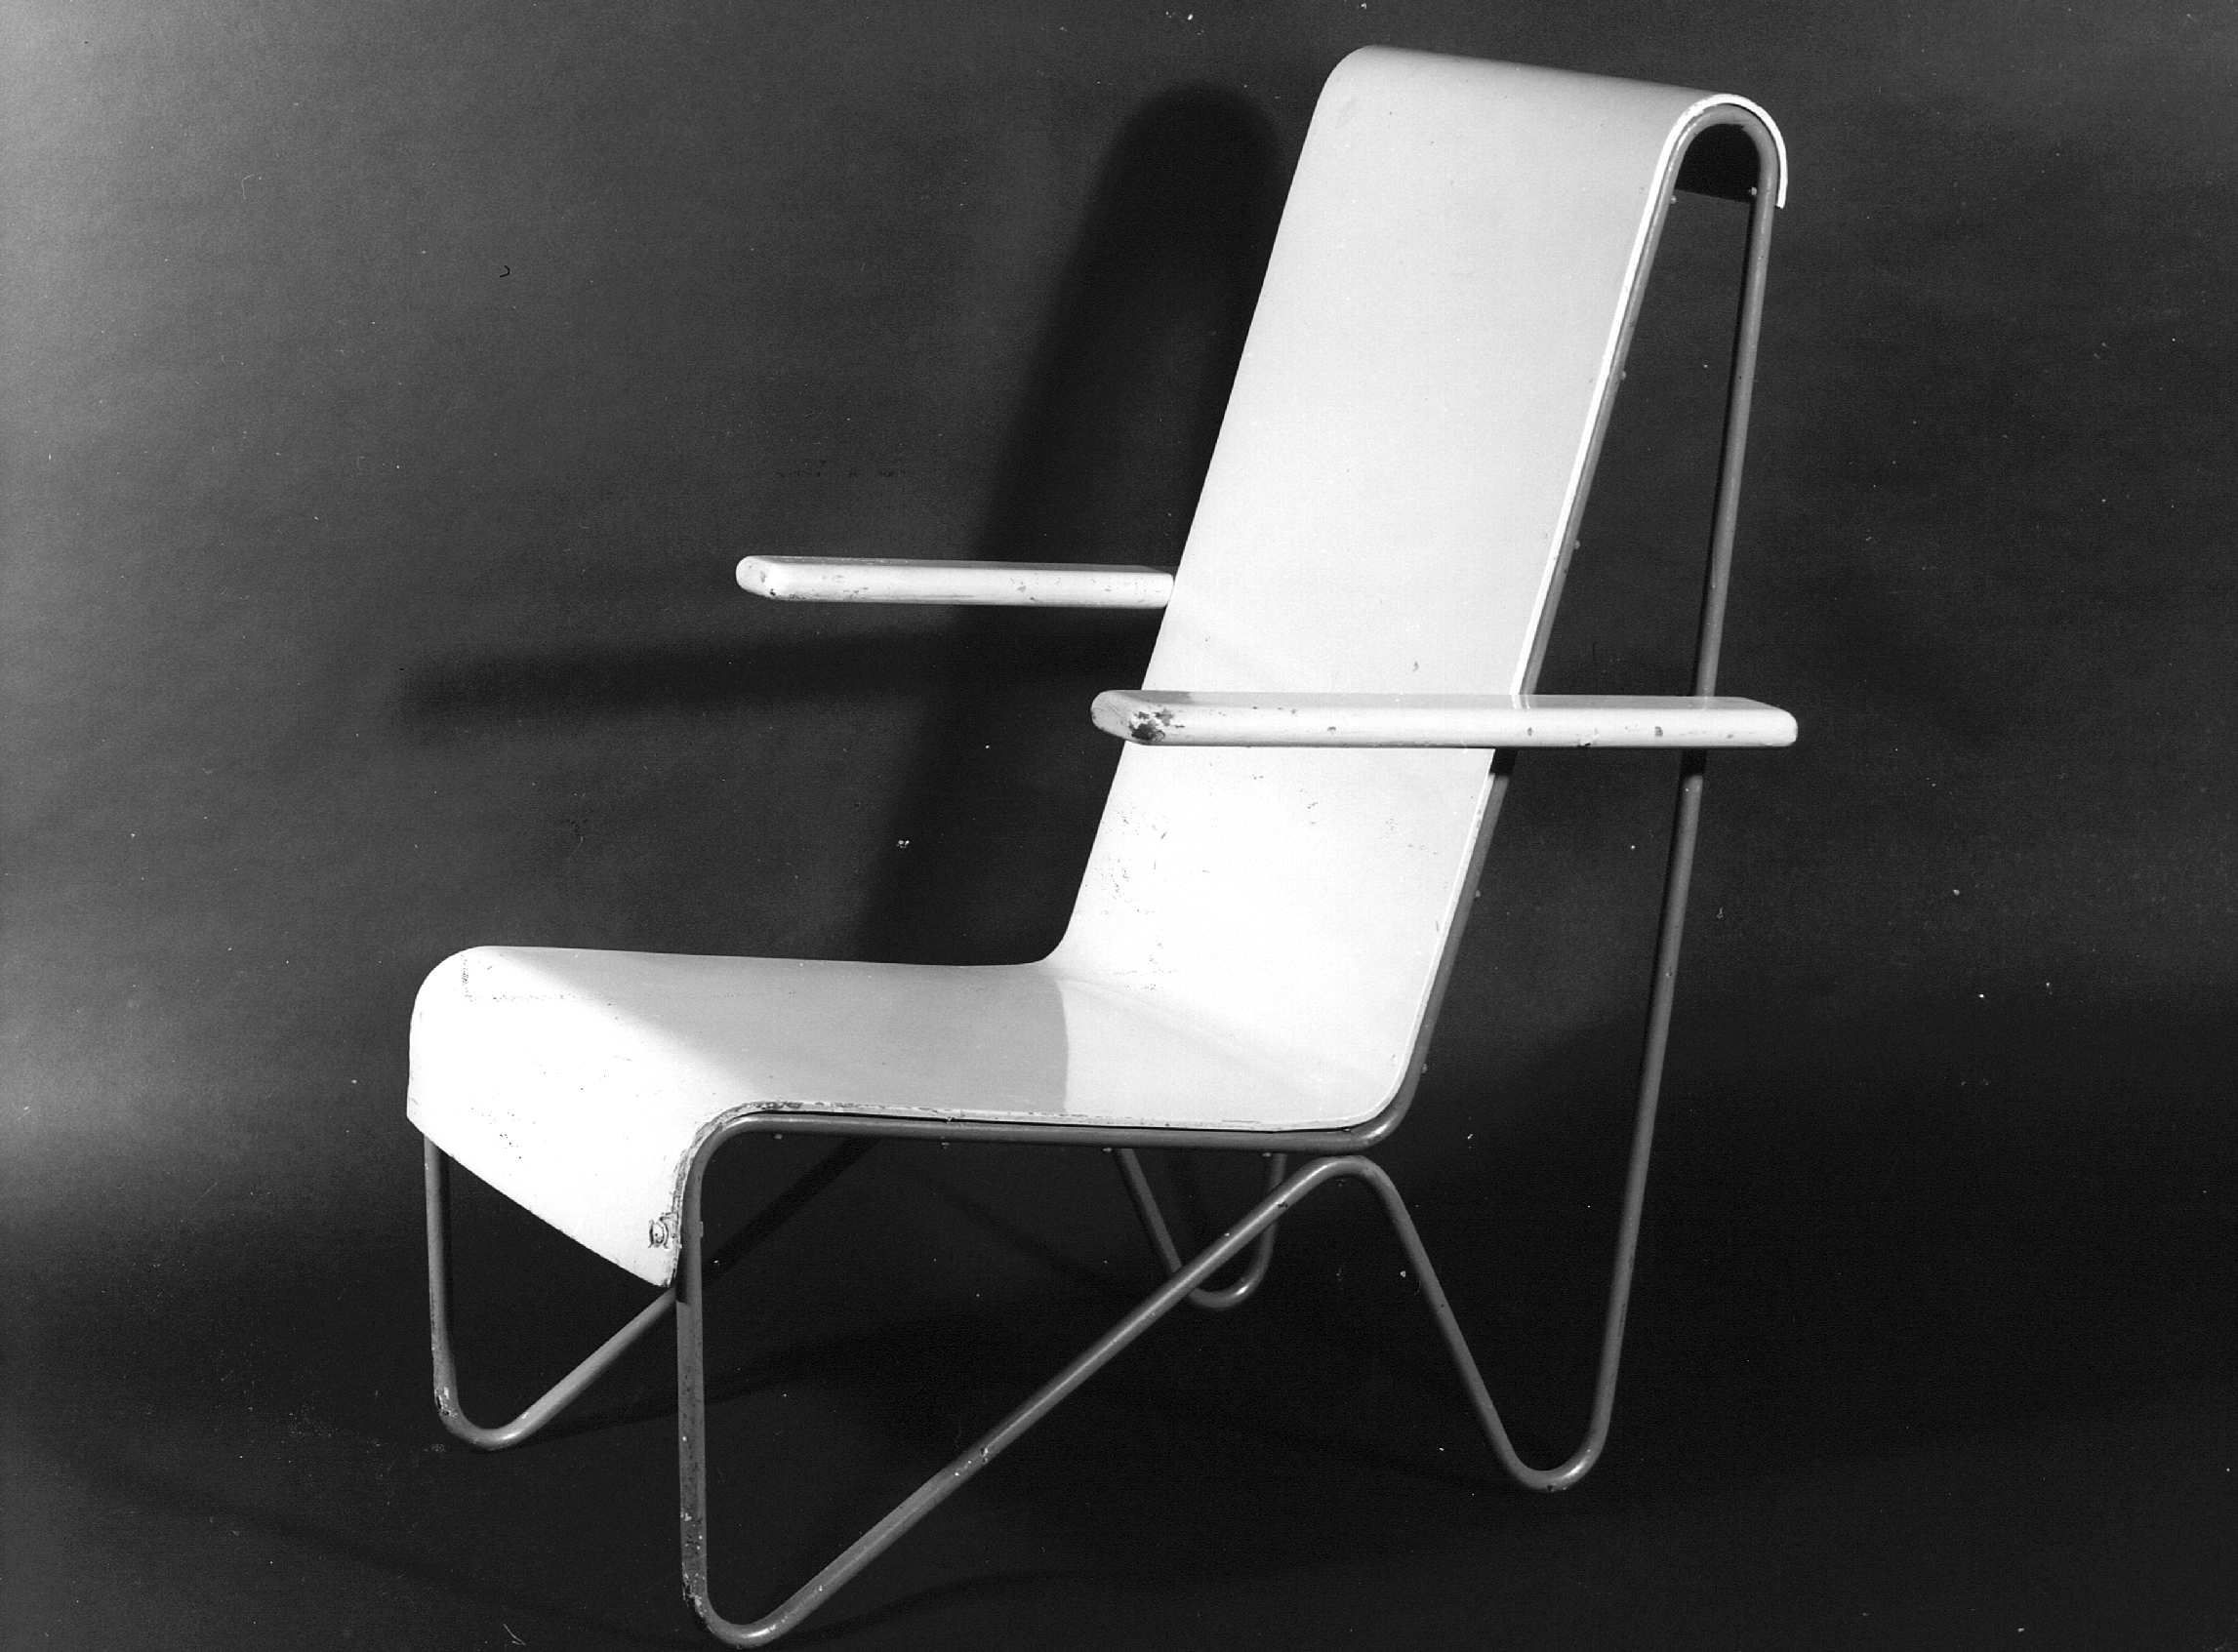 Cool Modern Chairs Rietveld Sentimental Lymph Node The 居坐